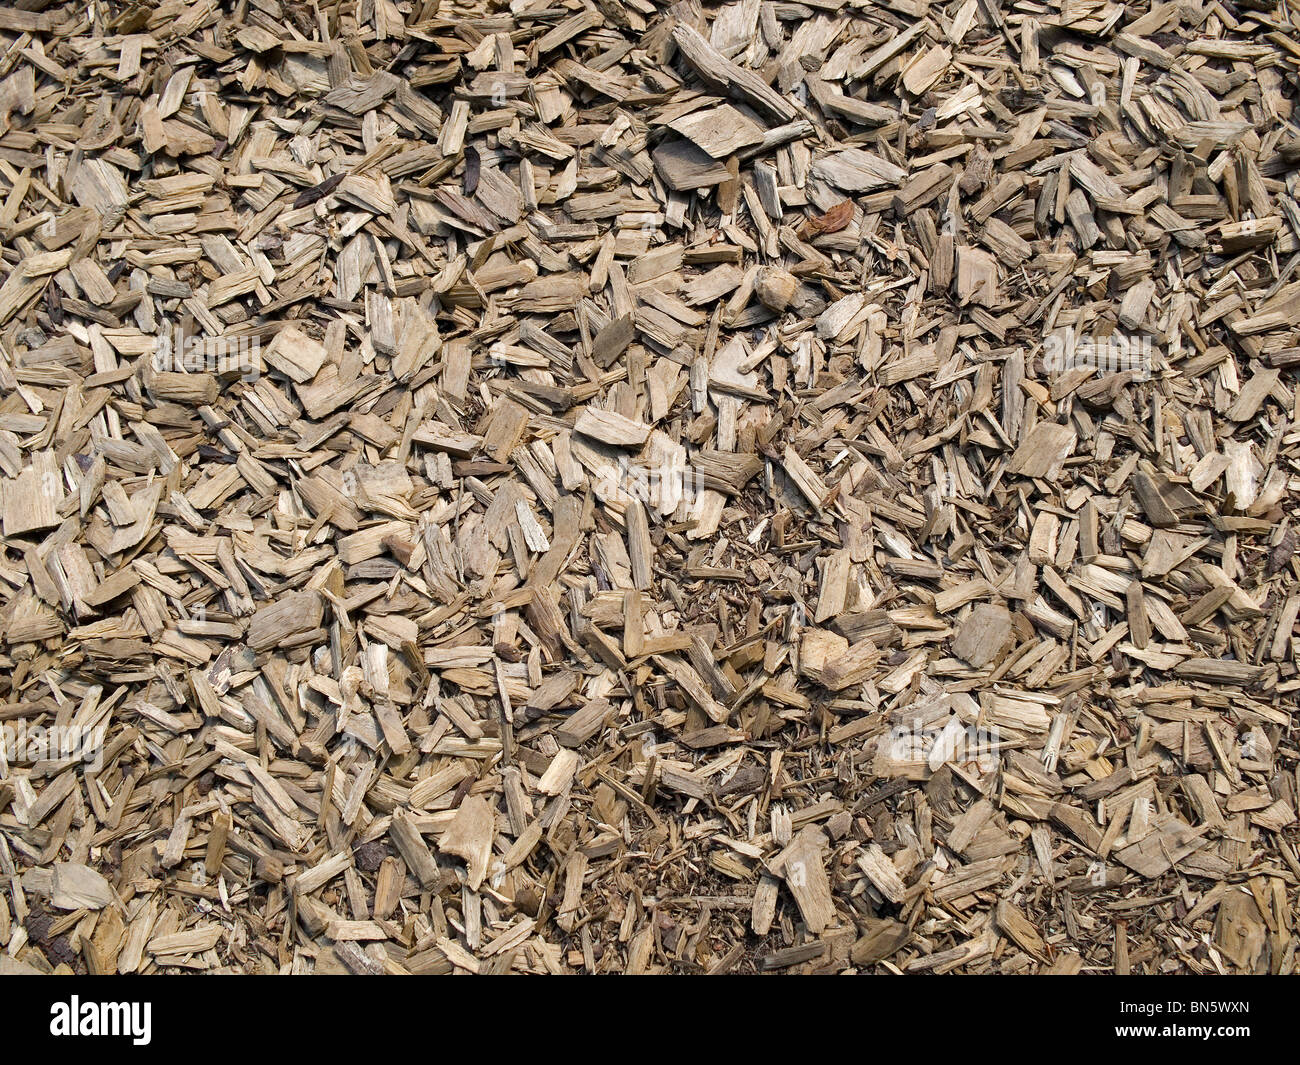 Wood Chip And Bark Ground Cover Stock Photo 30248253 Alamy